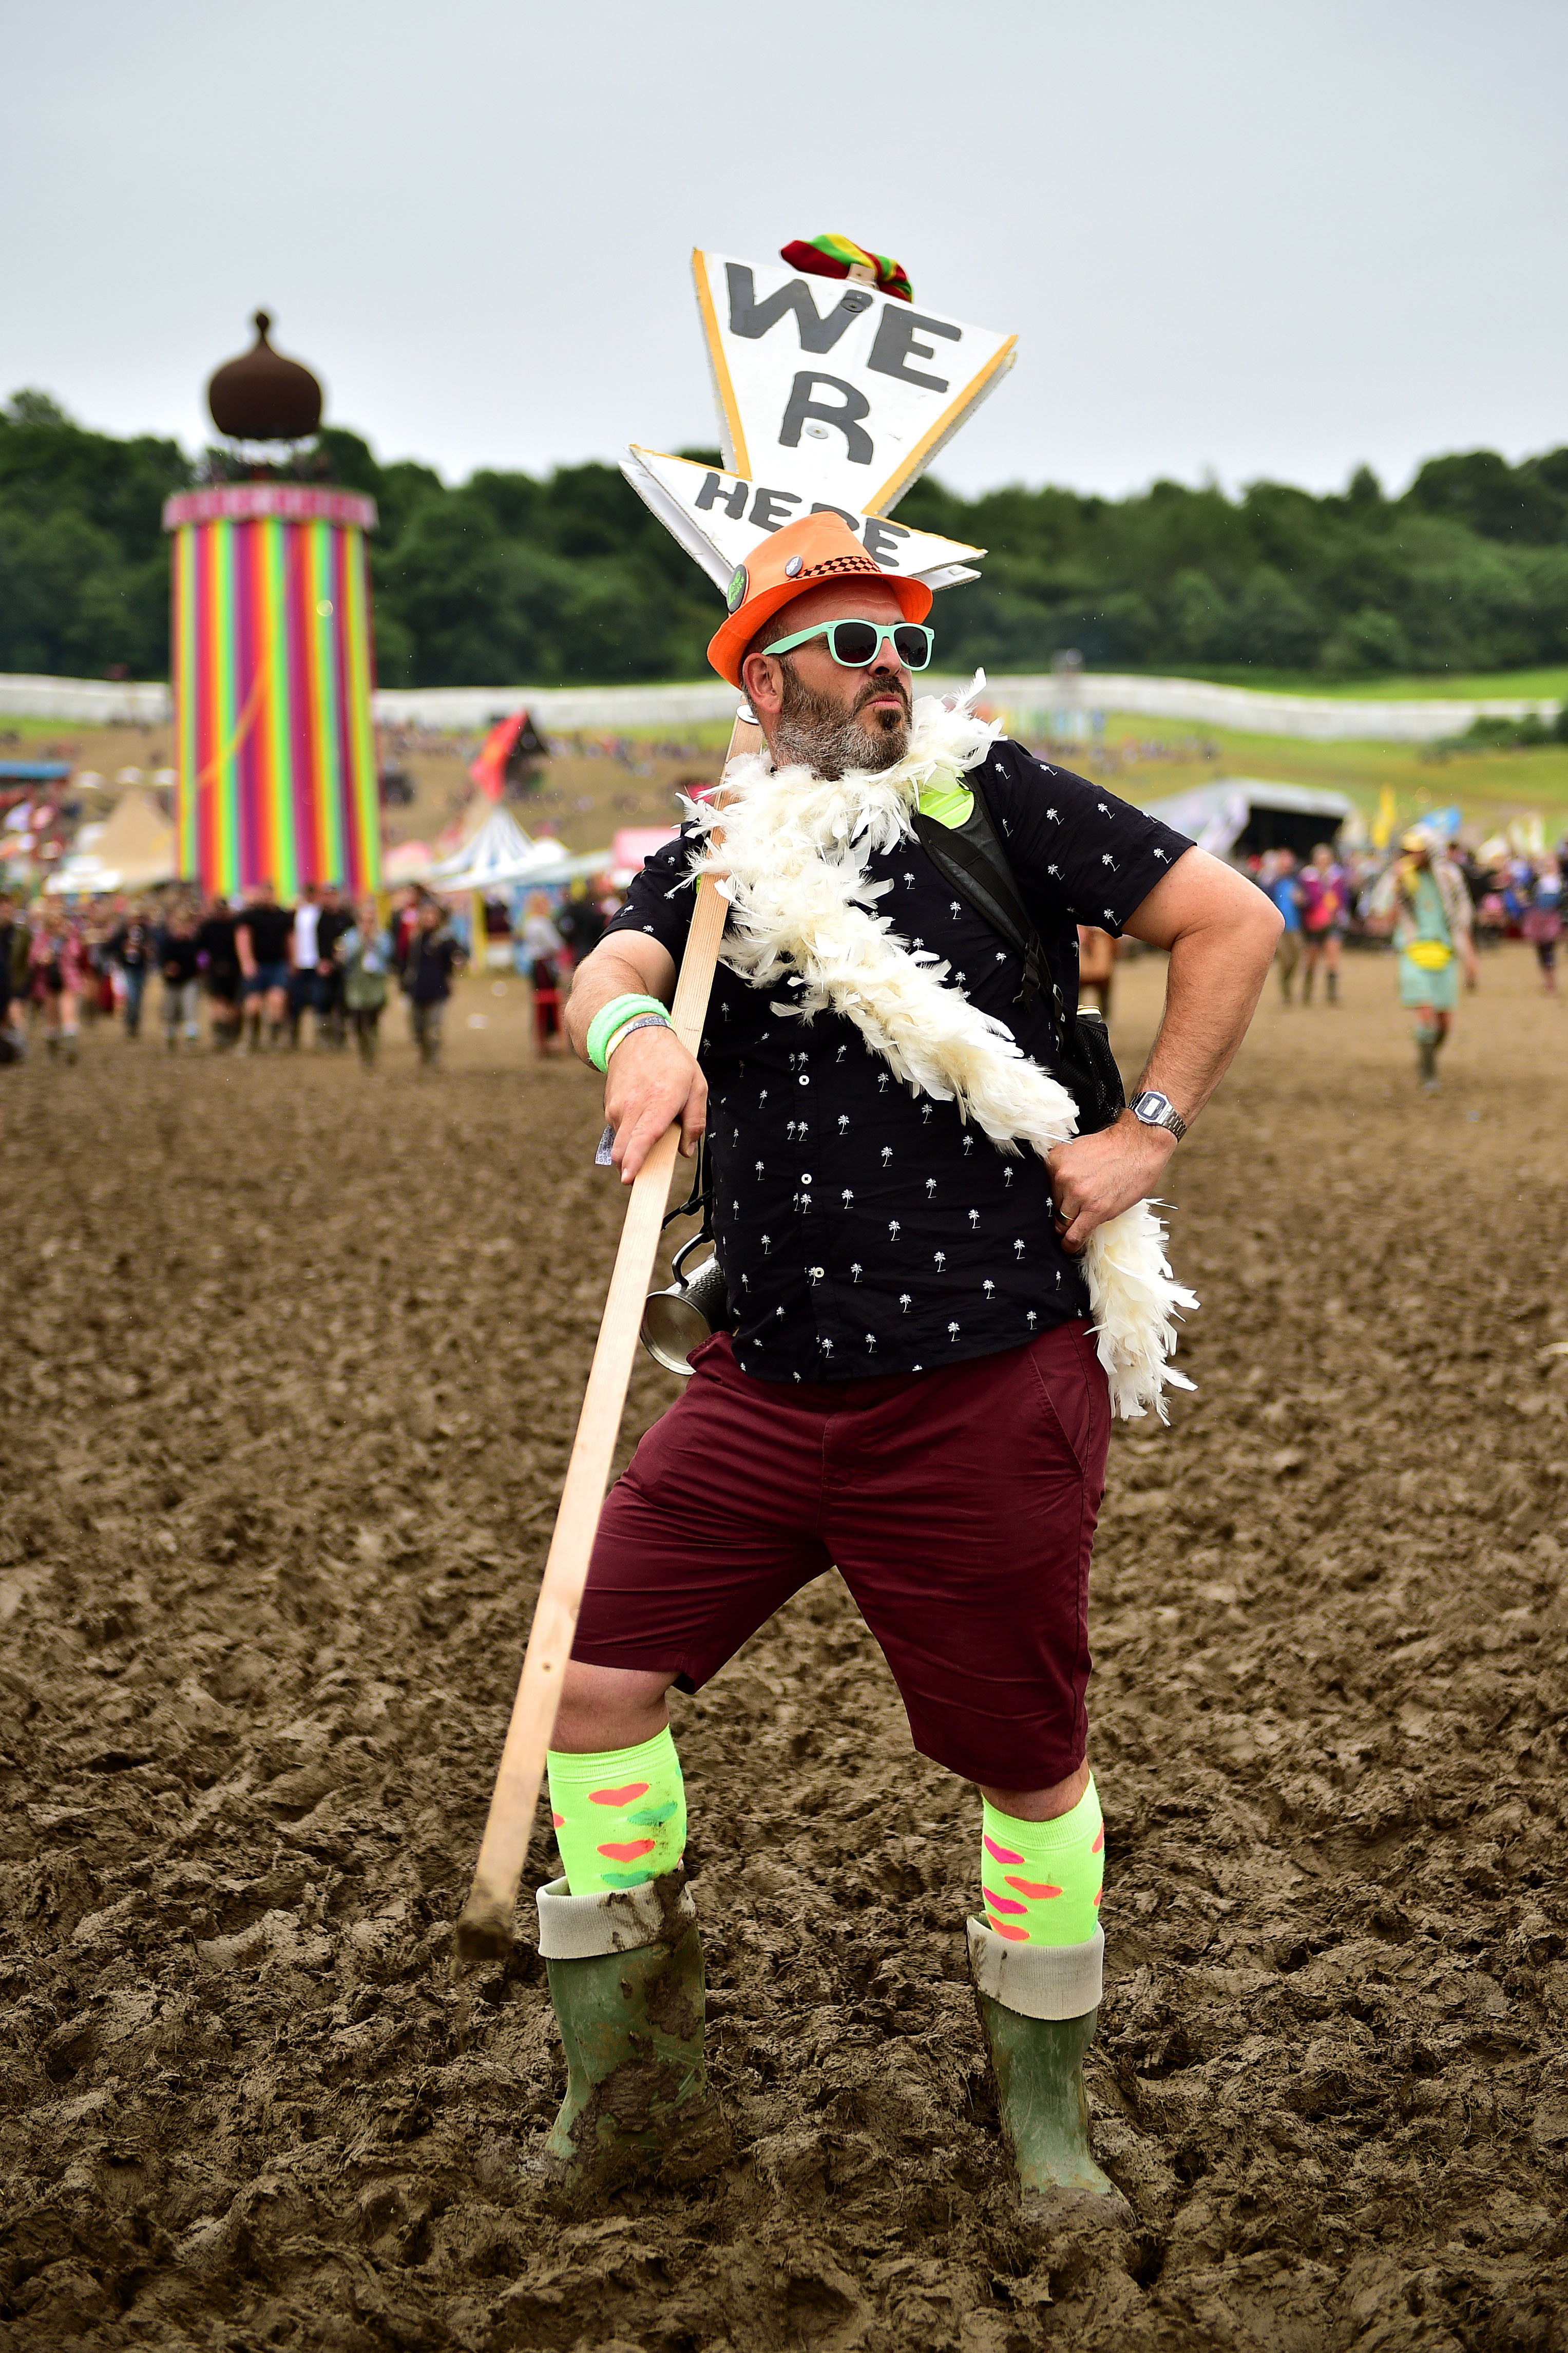 Philip Lyons, 38, from Gravesend at the Glastonbury Festival, at Worthy Farm in Somerset.